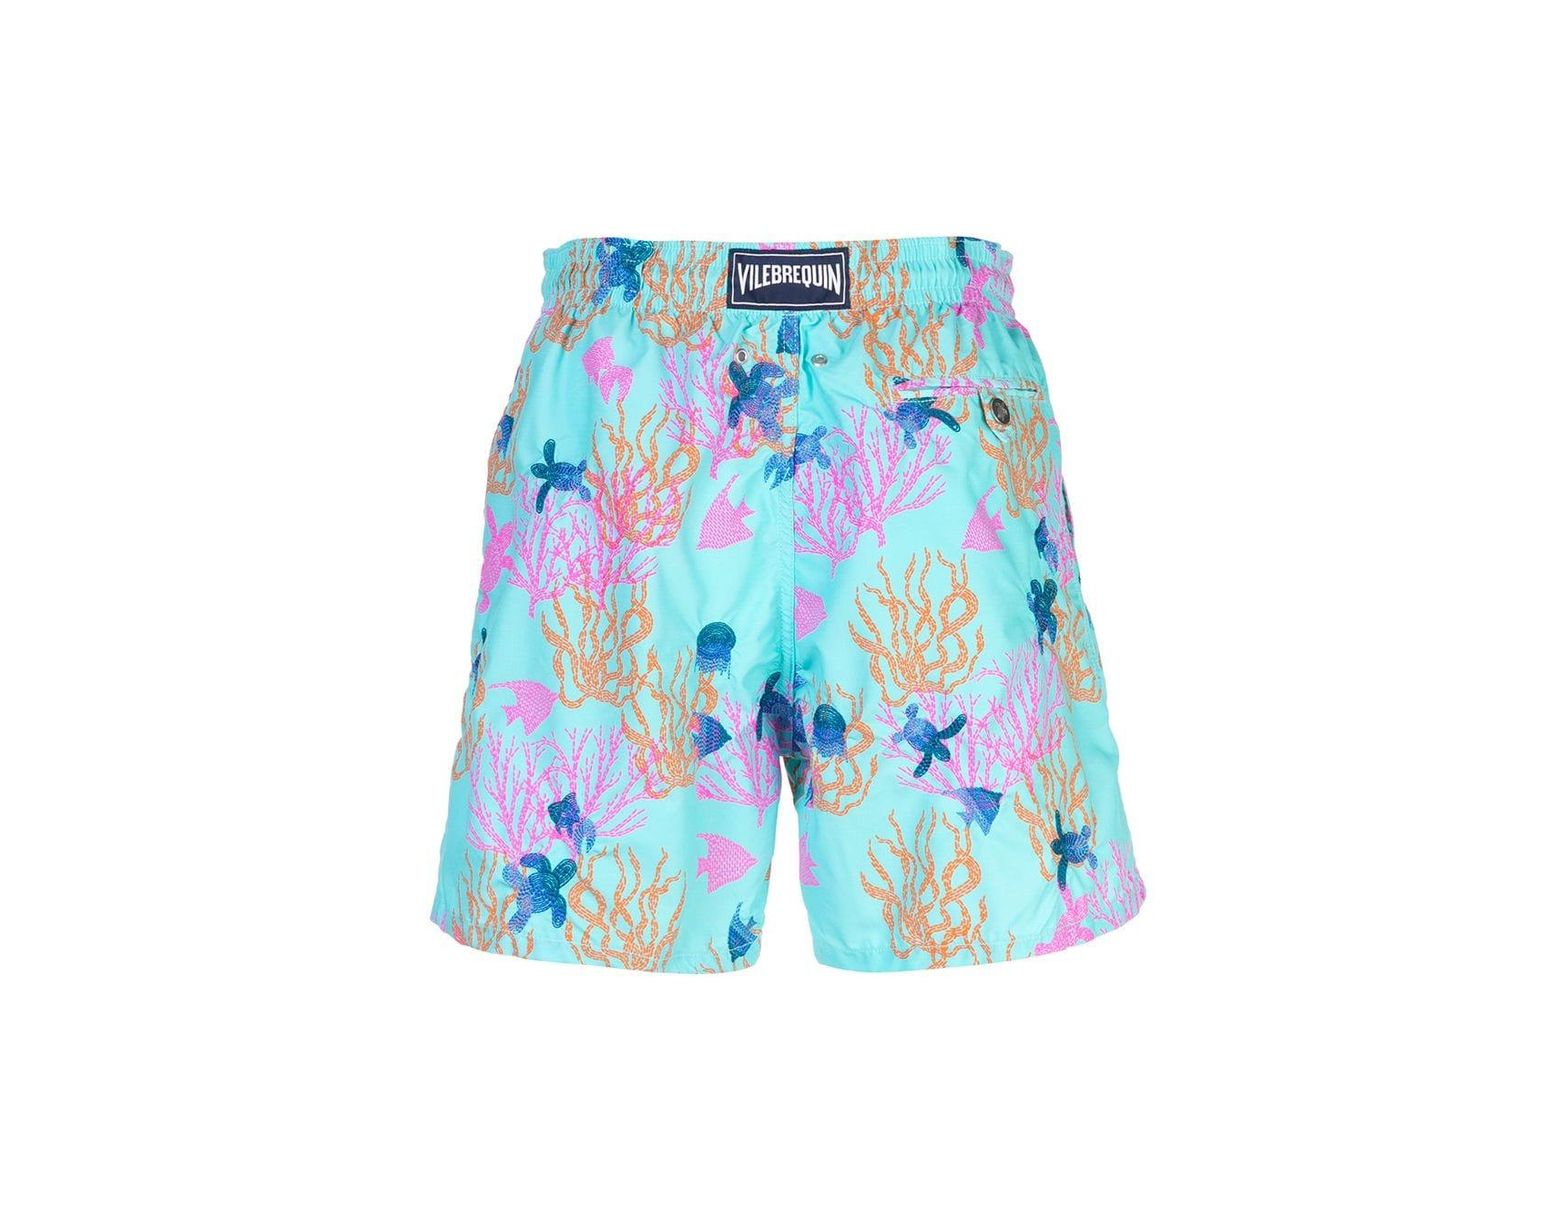 d4234f4c07 Vilebrequin Printed Swim Shorts in Blue for Men - Lyst